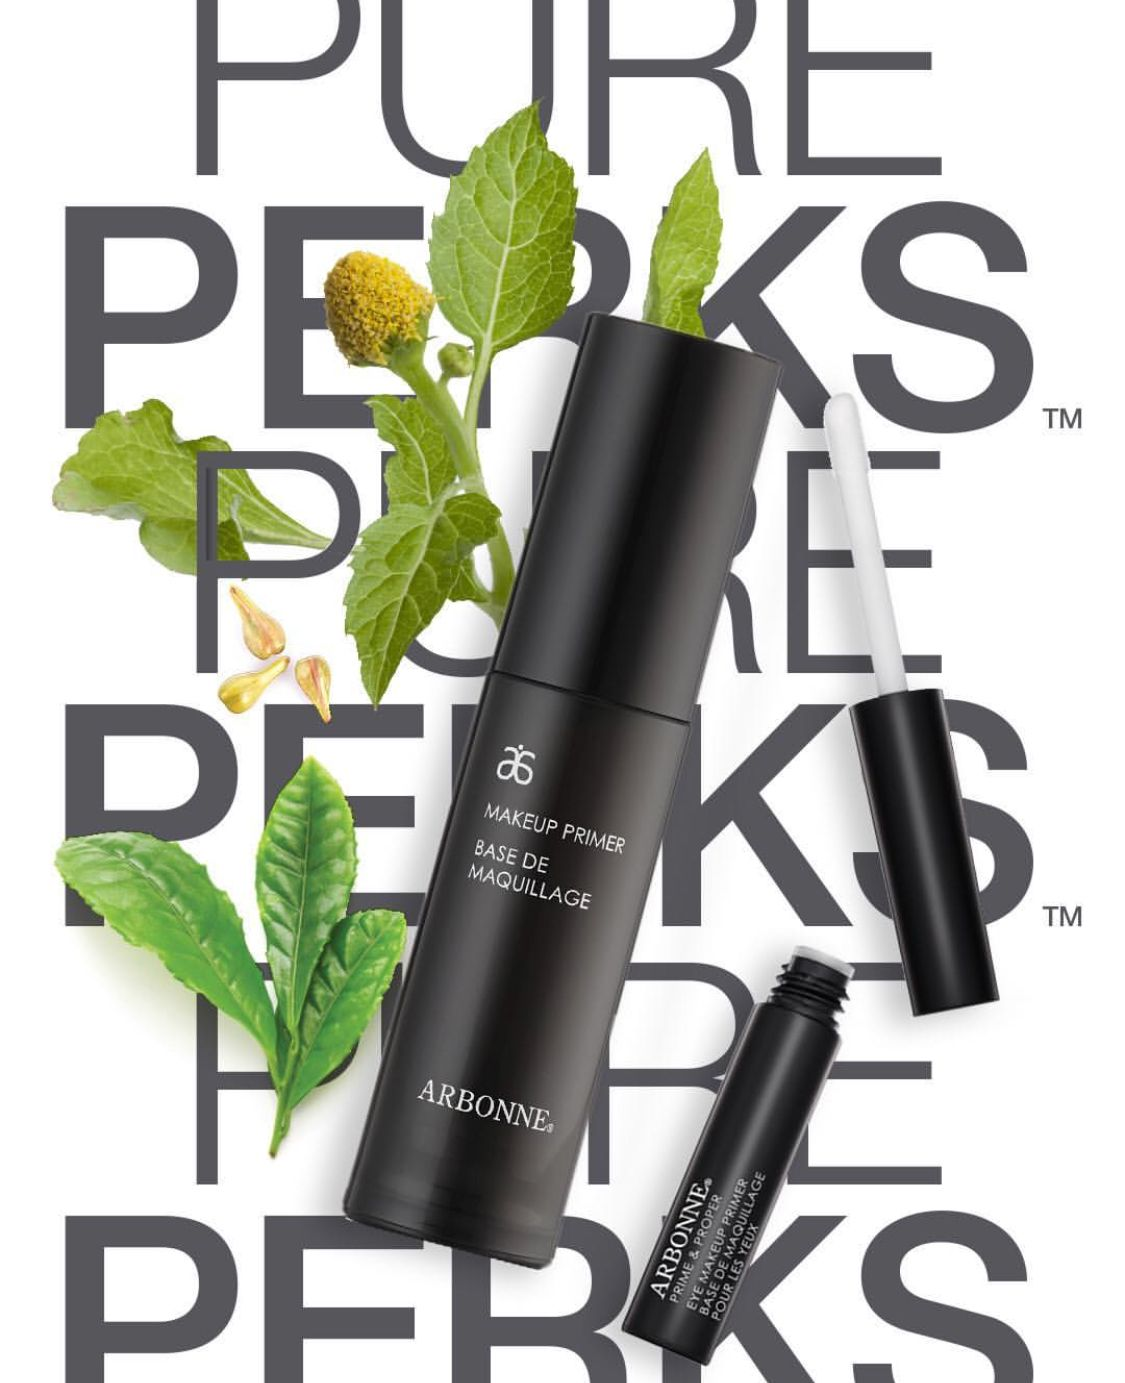 Last days to get in on this HUGE SALE! Arbonne's Nontoxic